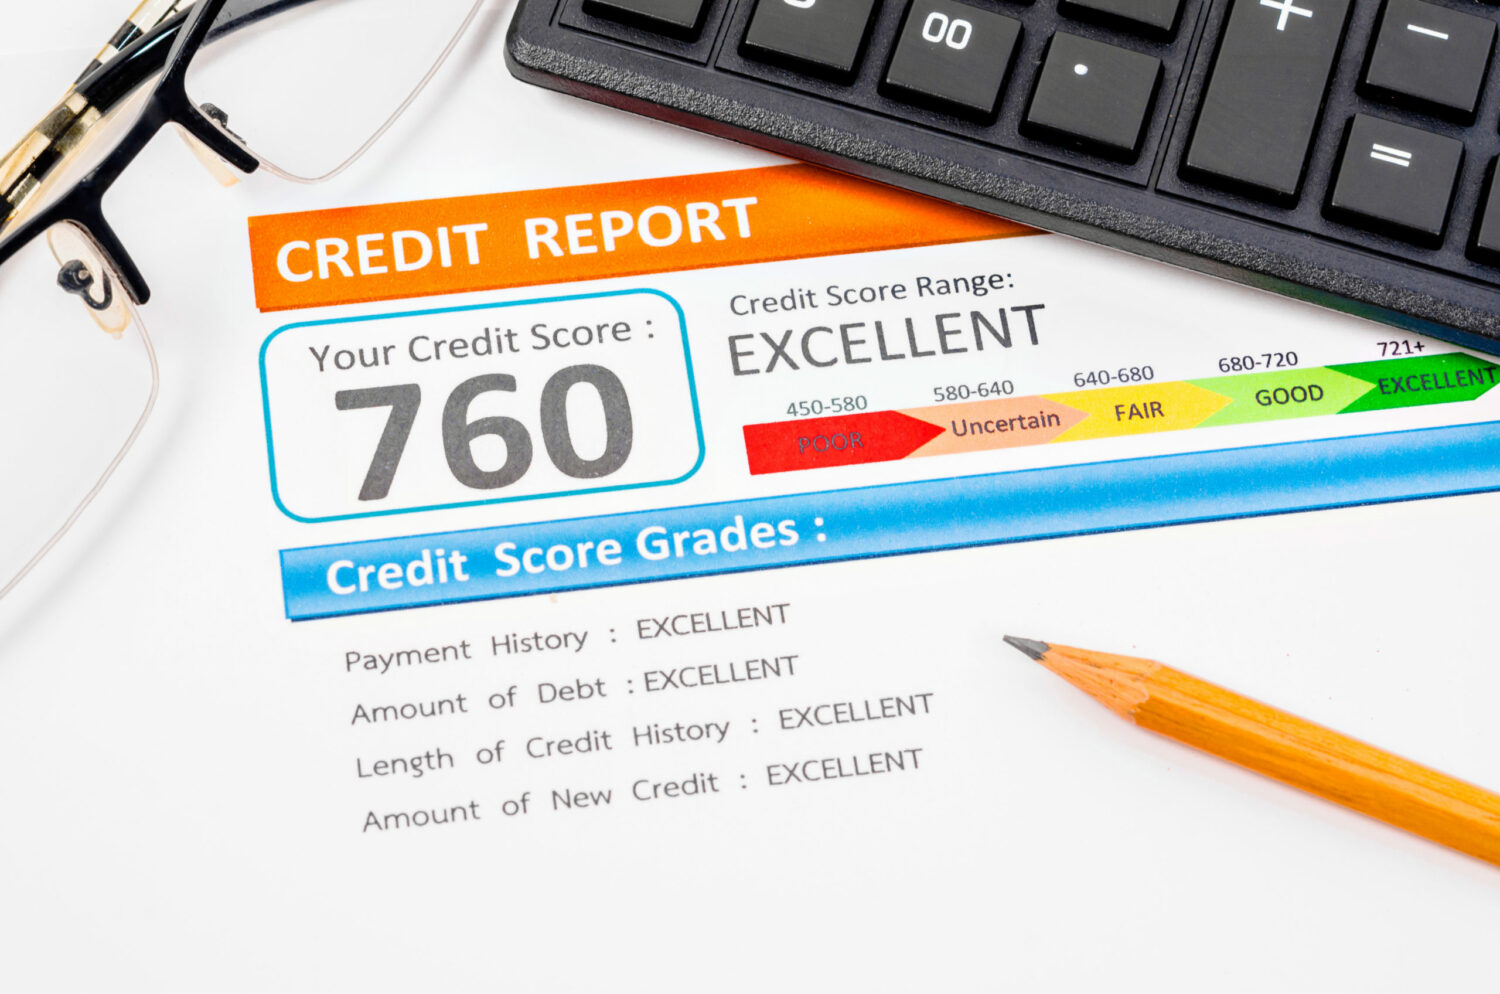 A credit report with an 'excellent